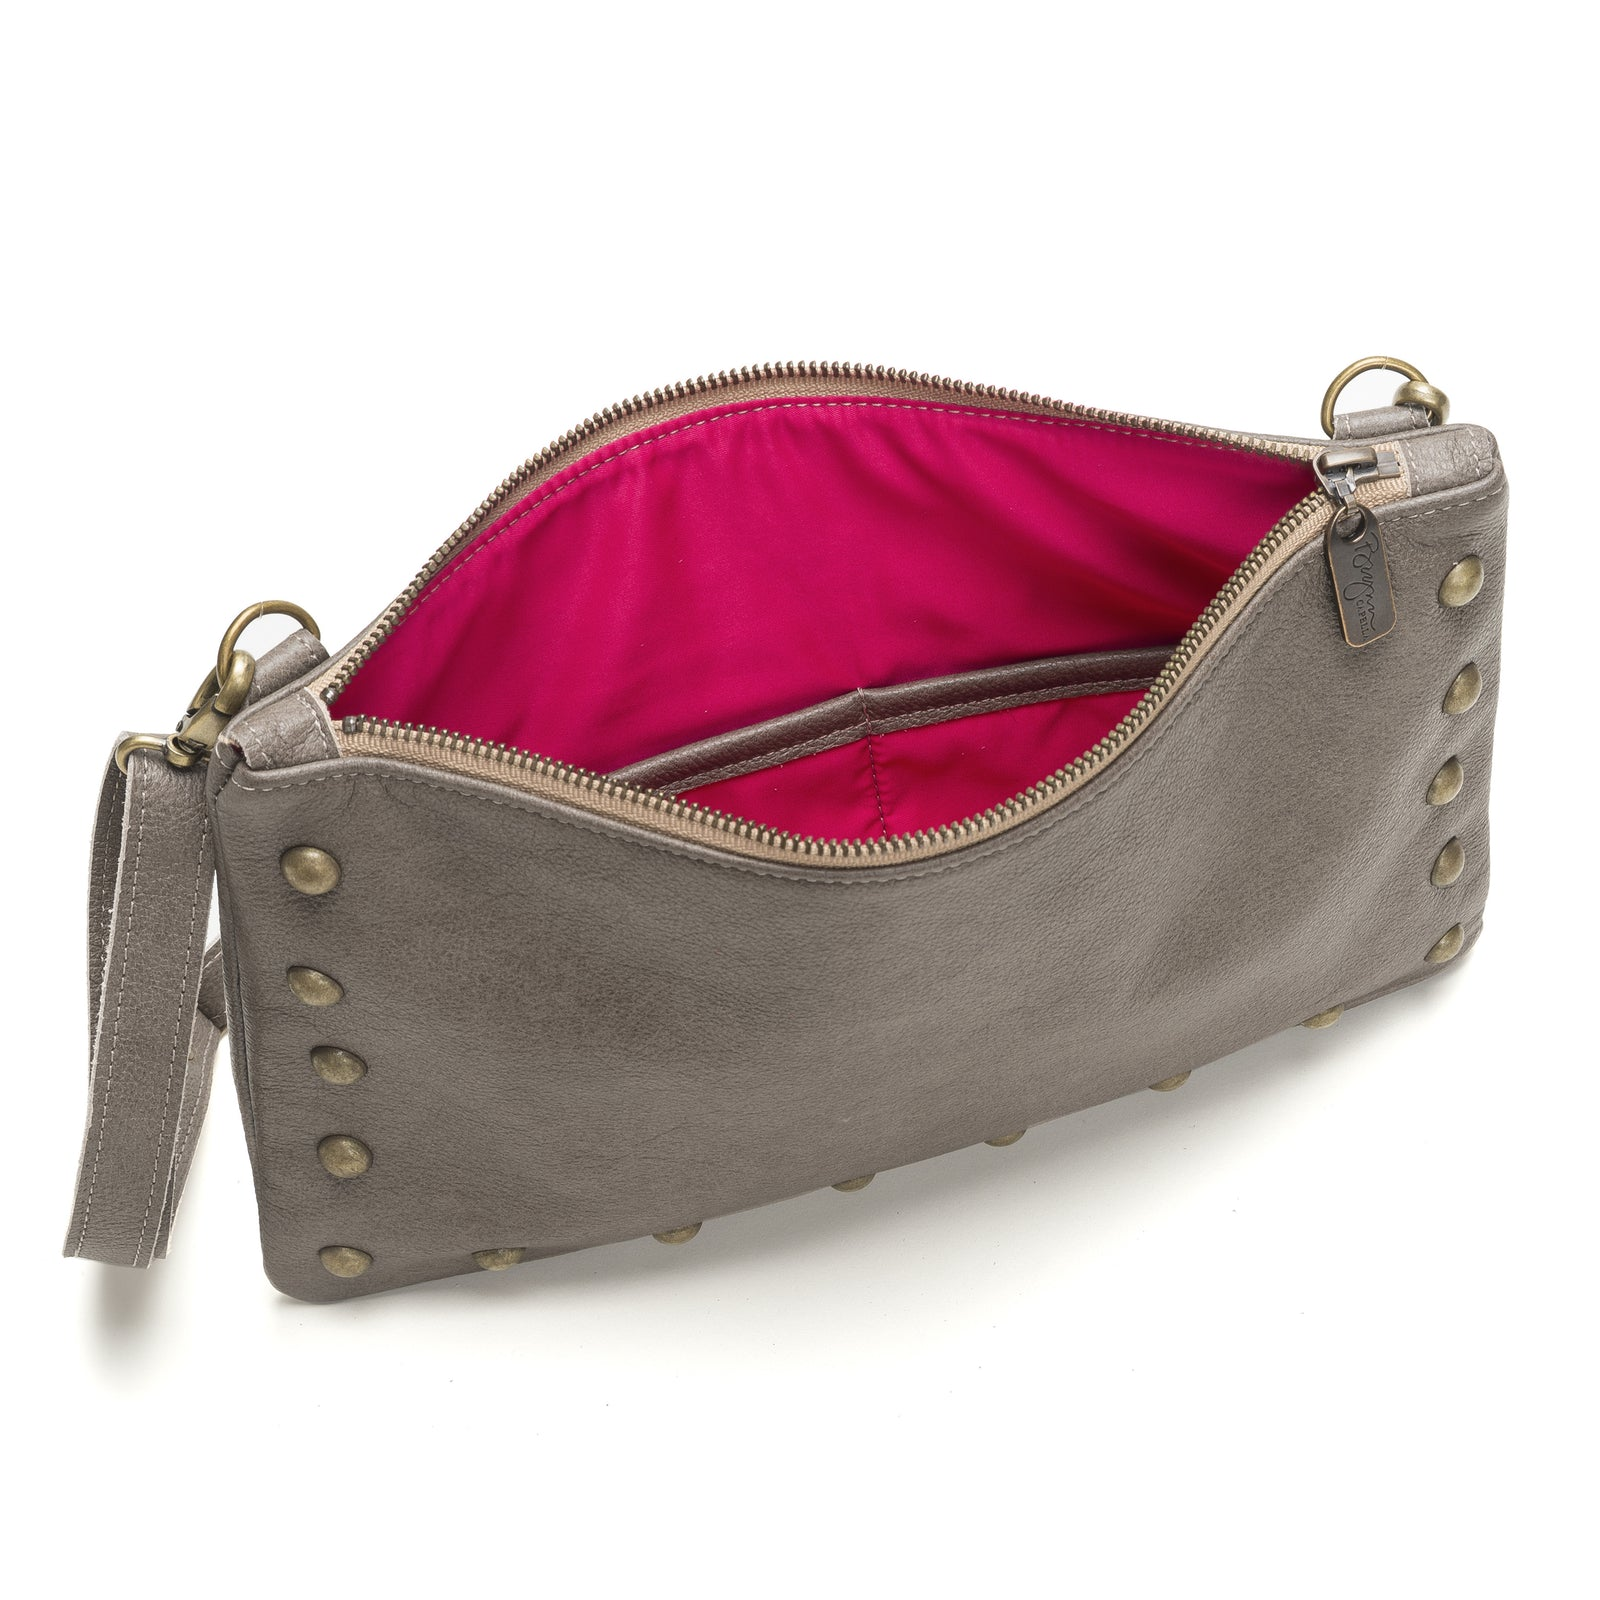 Nikki Clutch/Crossbody - Cobblestone - Brynn Capella, Small Crossbody